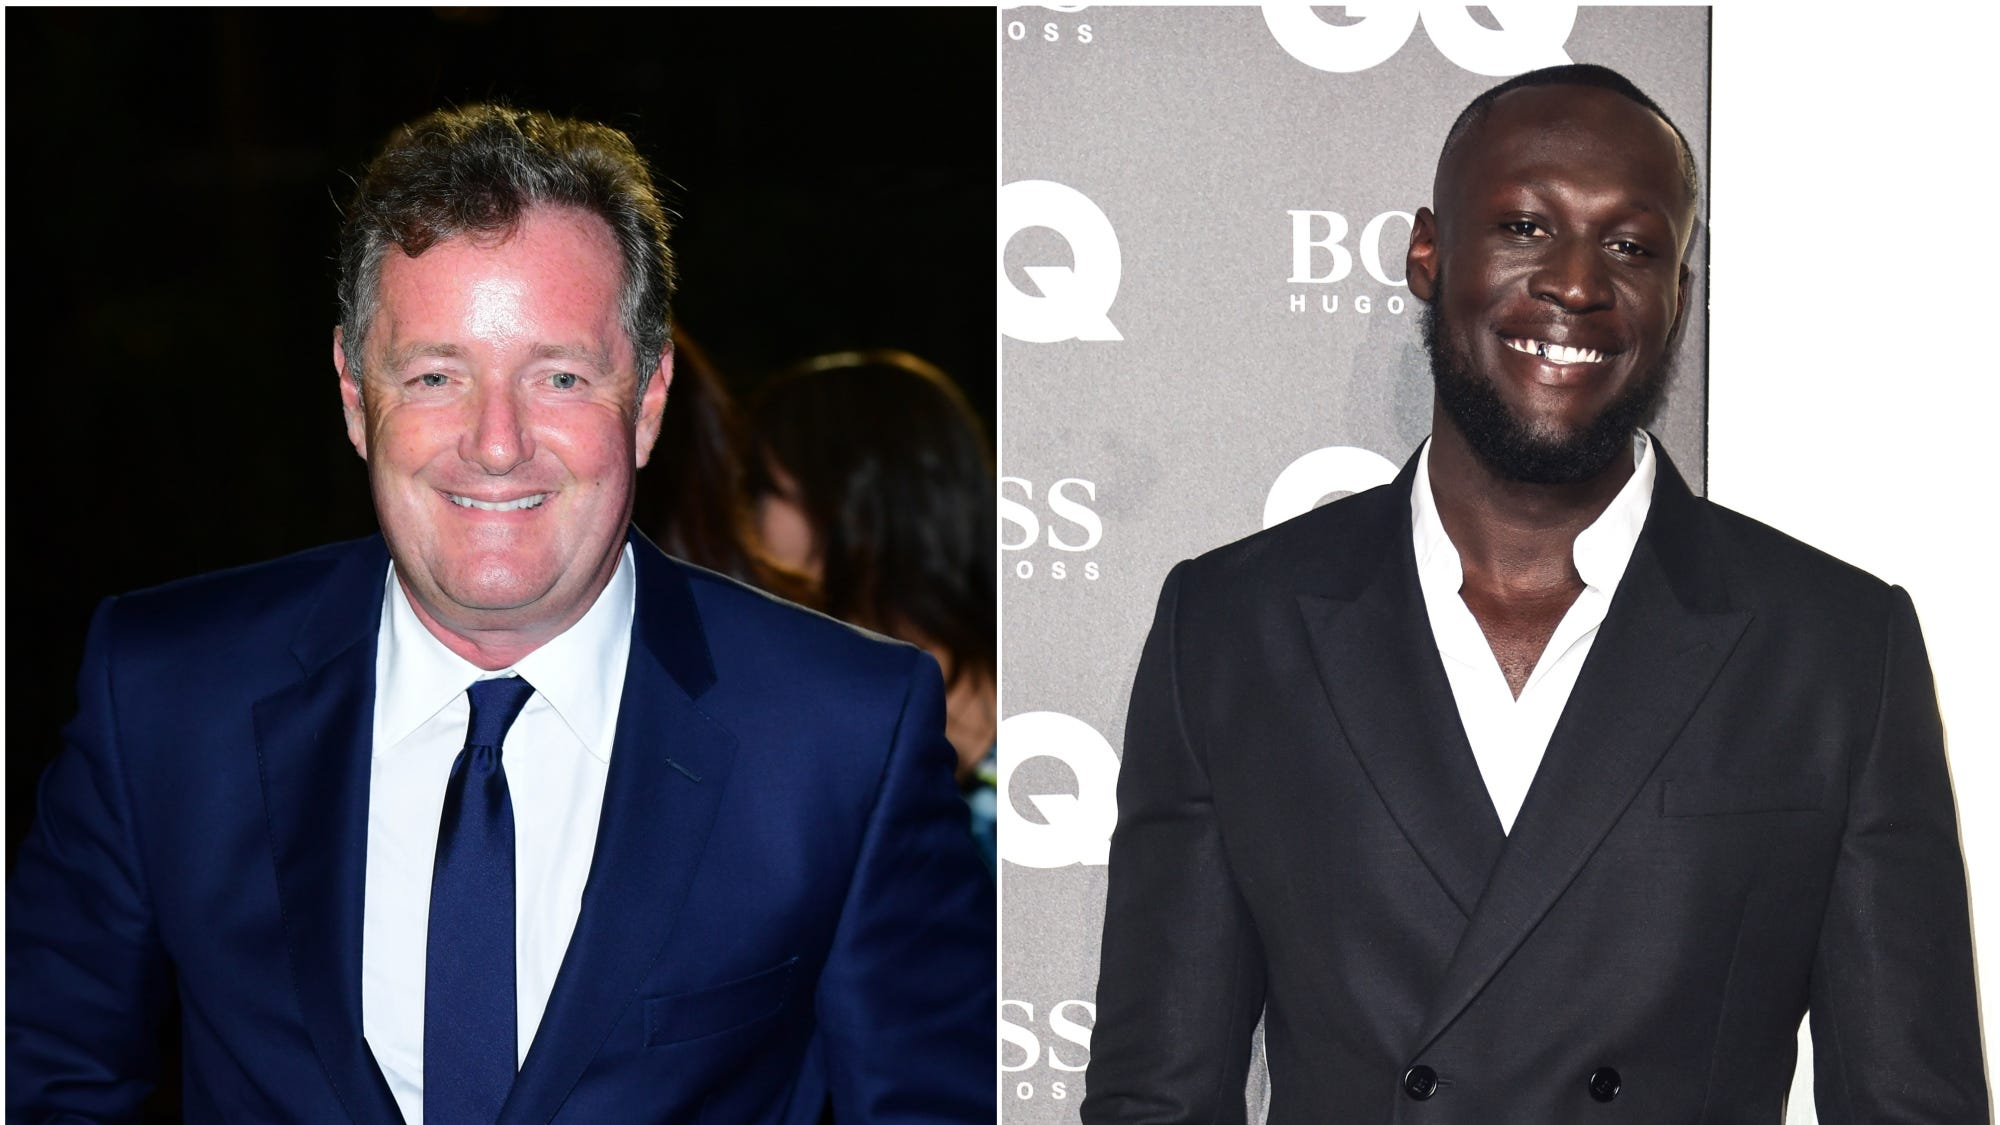 Piers Morgan and Stormzy